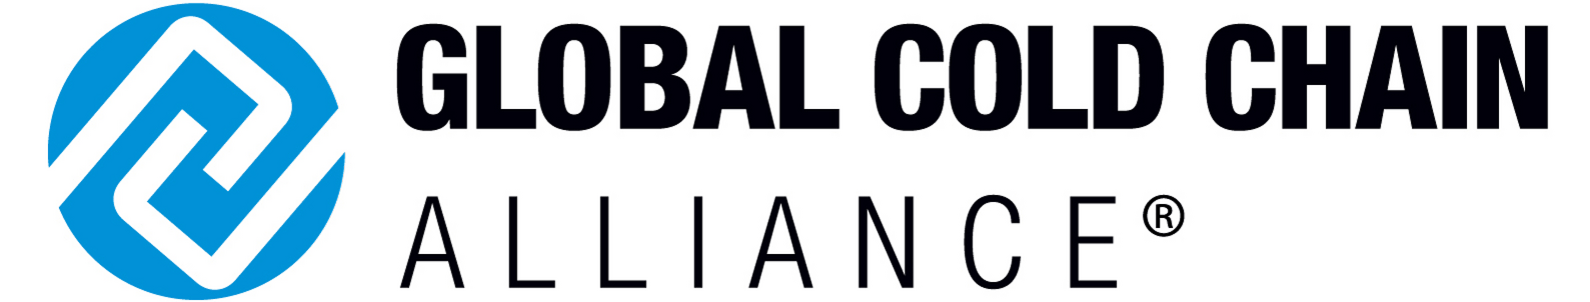 Global Cold Chain Alliance.png